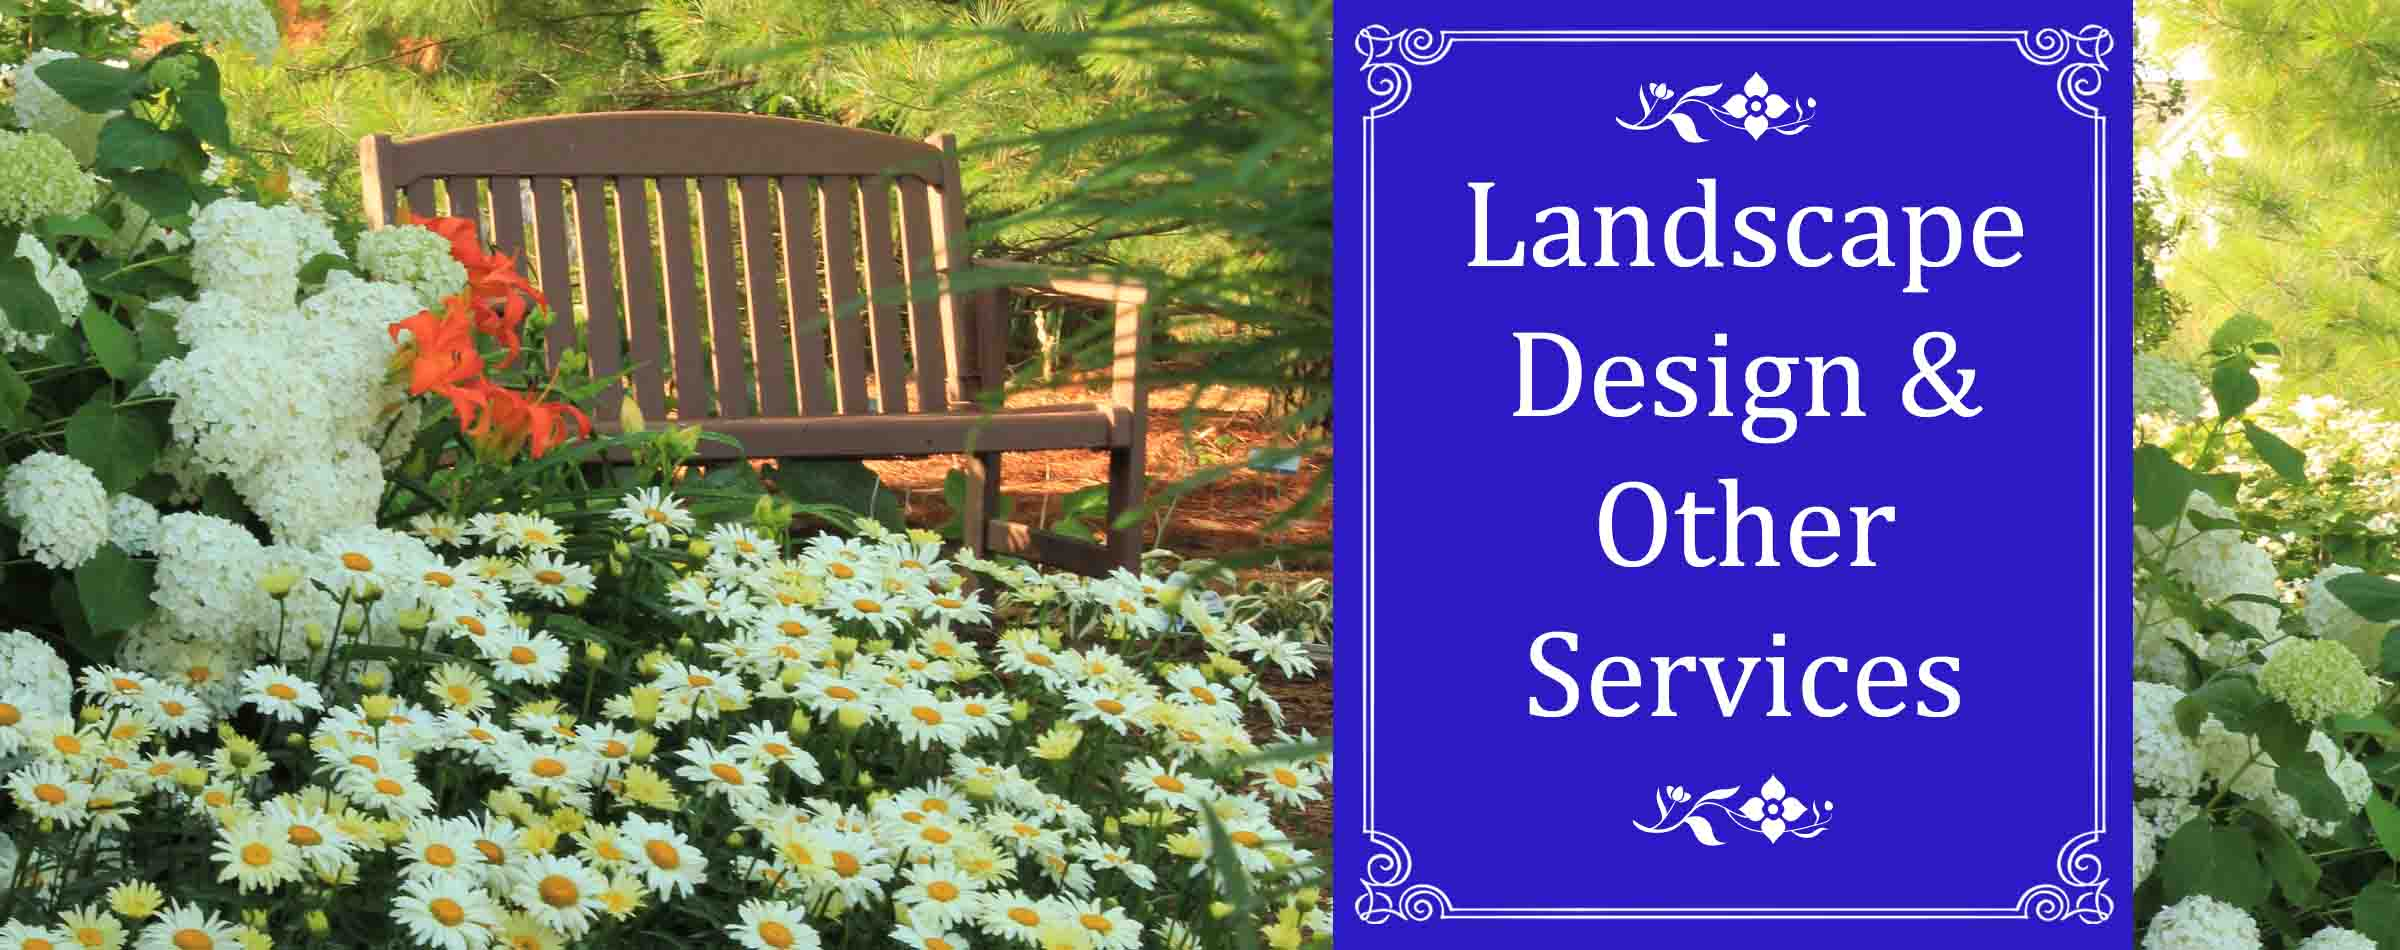 Landscape Design at St Louis Plant Nursery